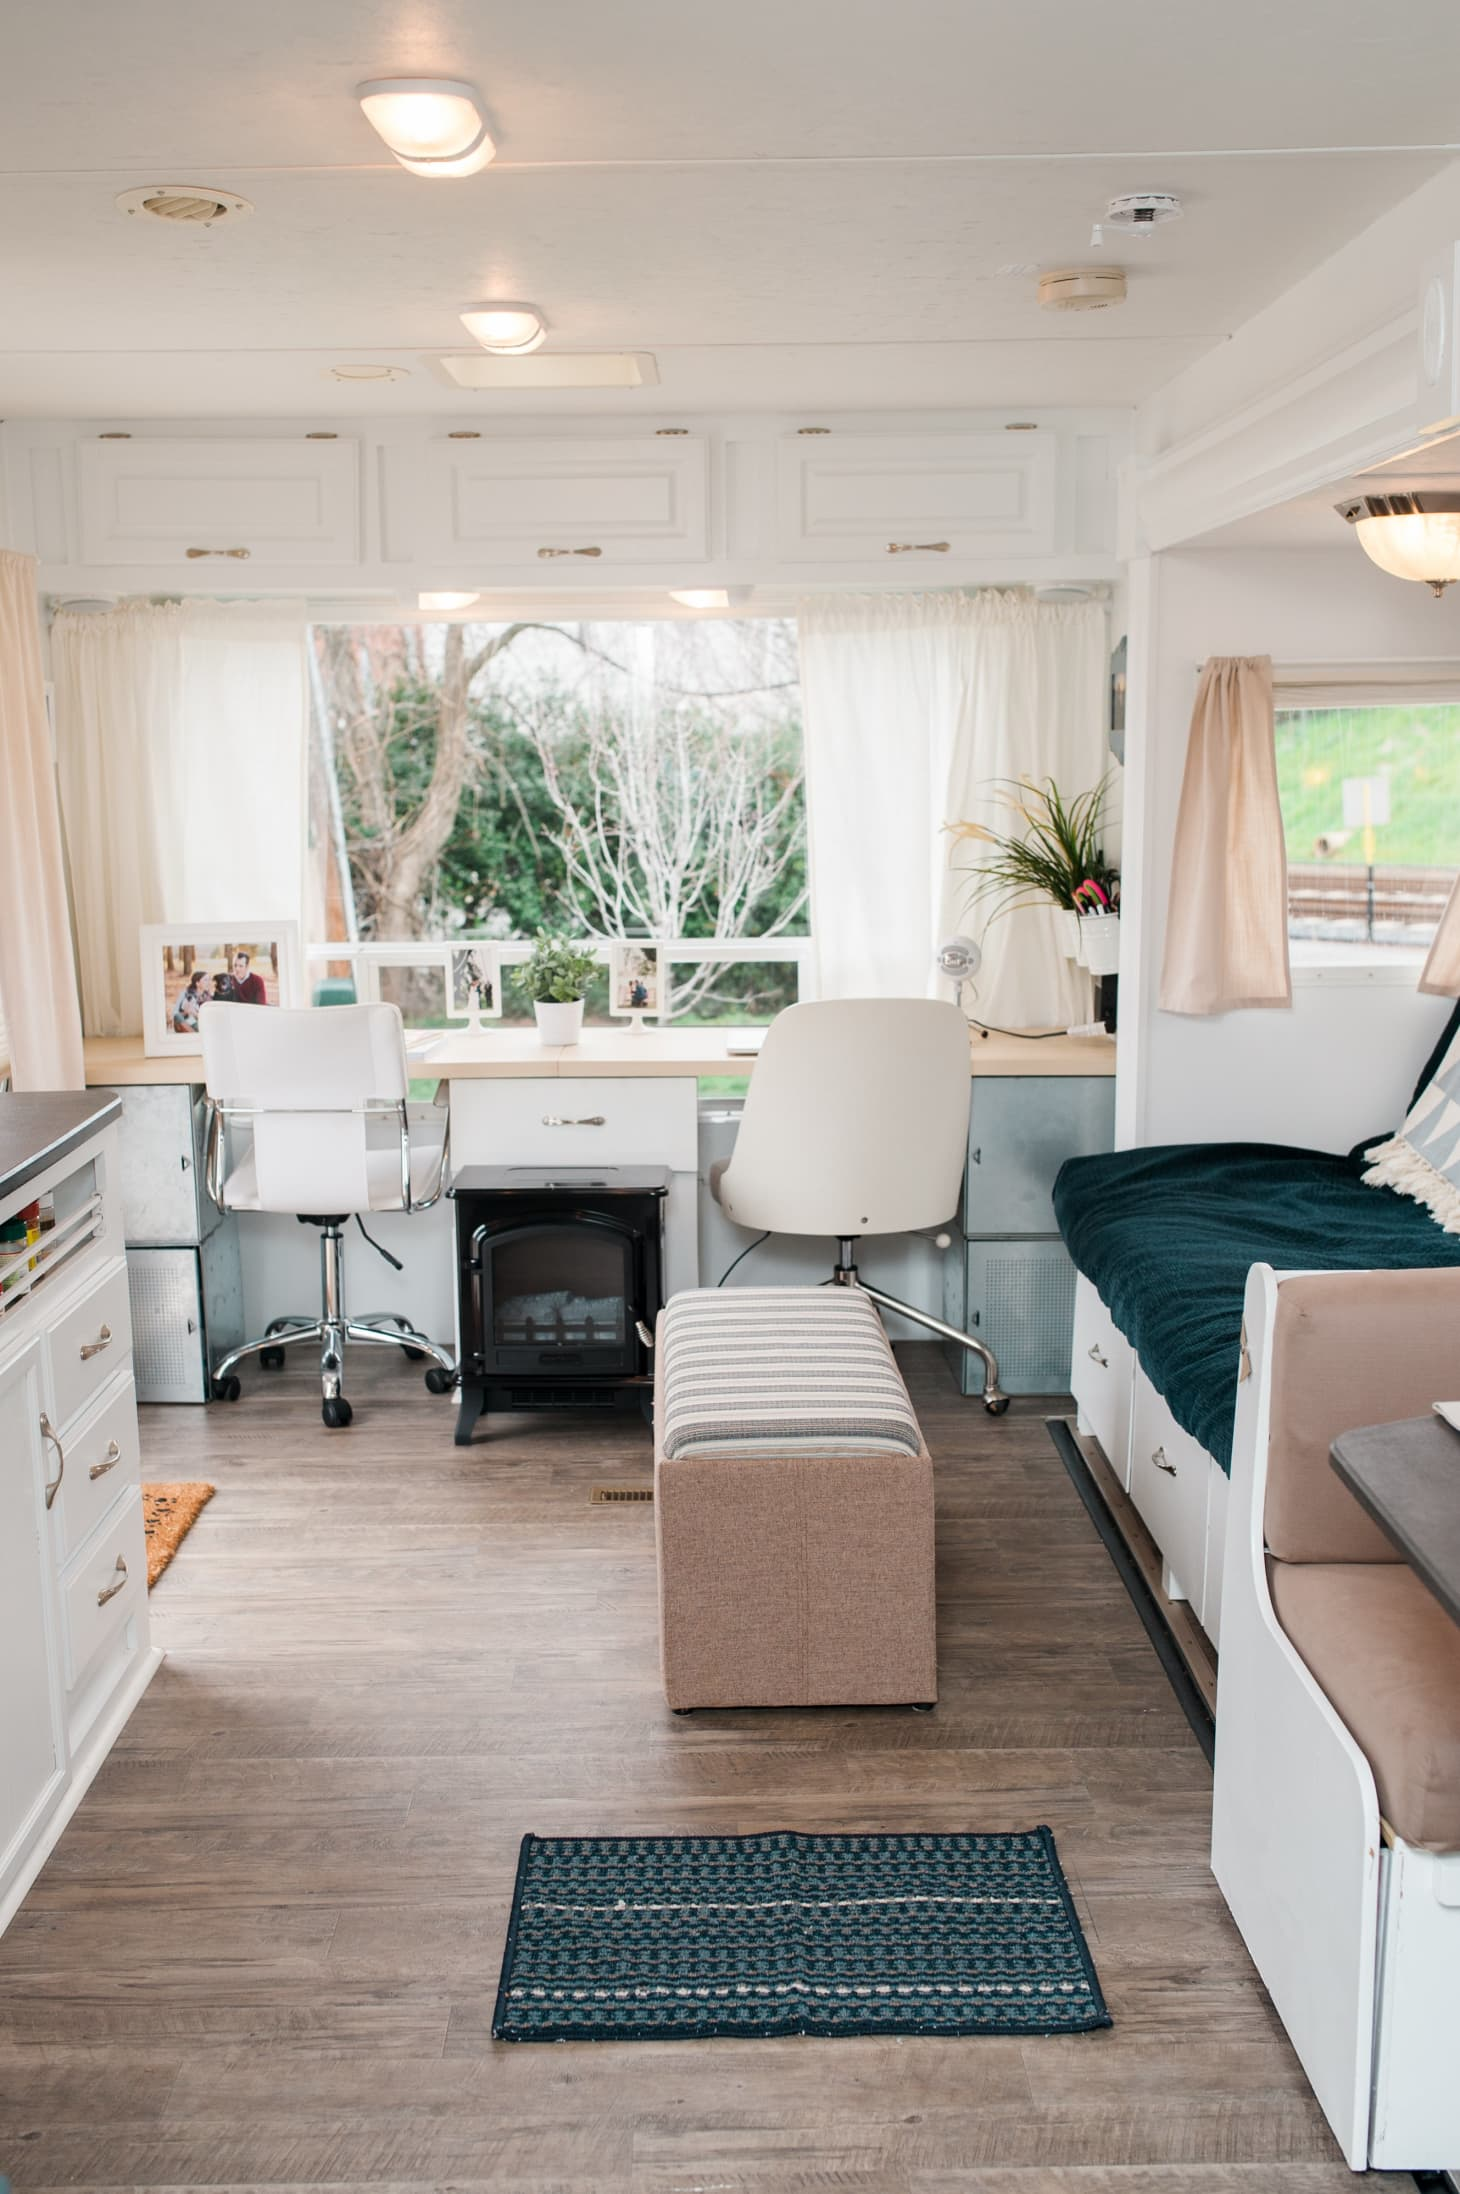 House Boats, RVs & Other Unconventionally Stylish Homes